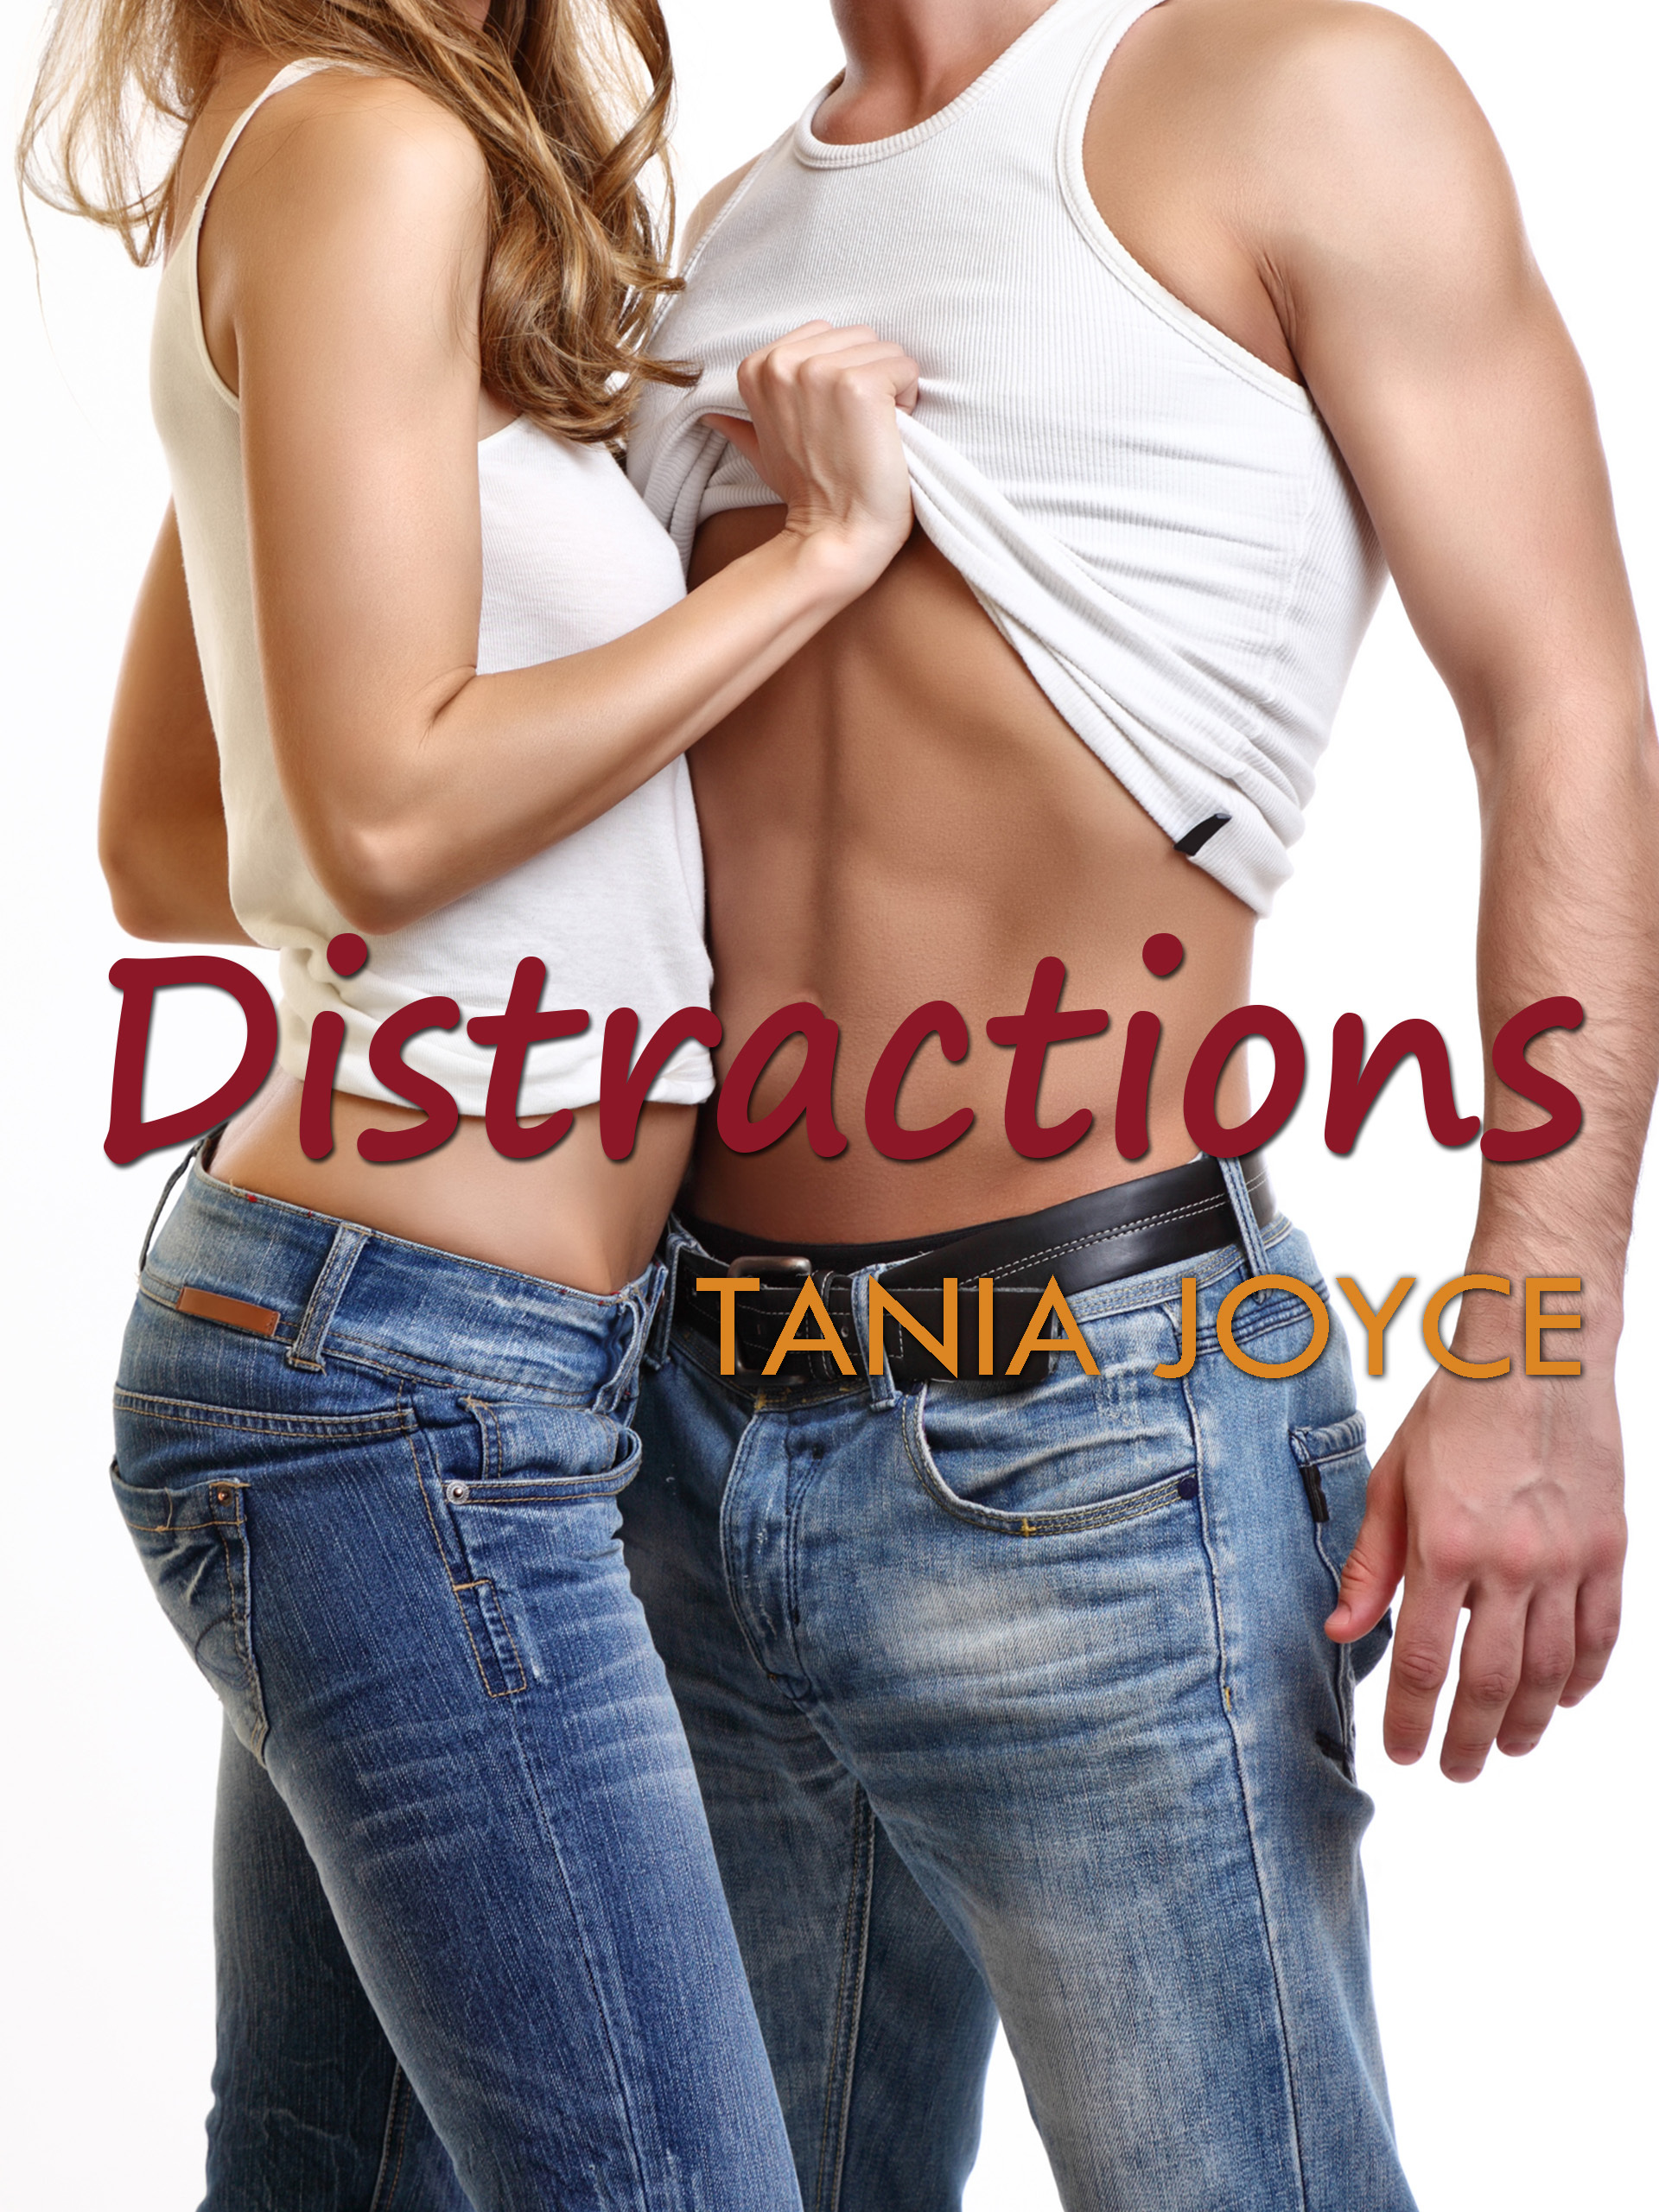 Distractions  by  Tania  Joyce